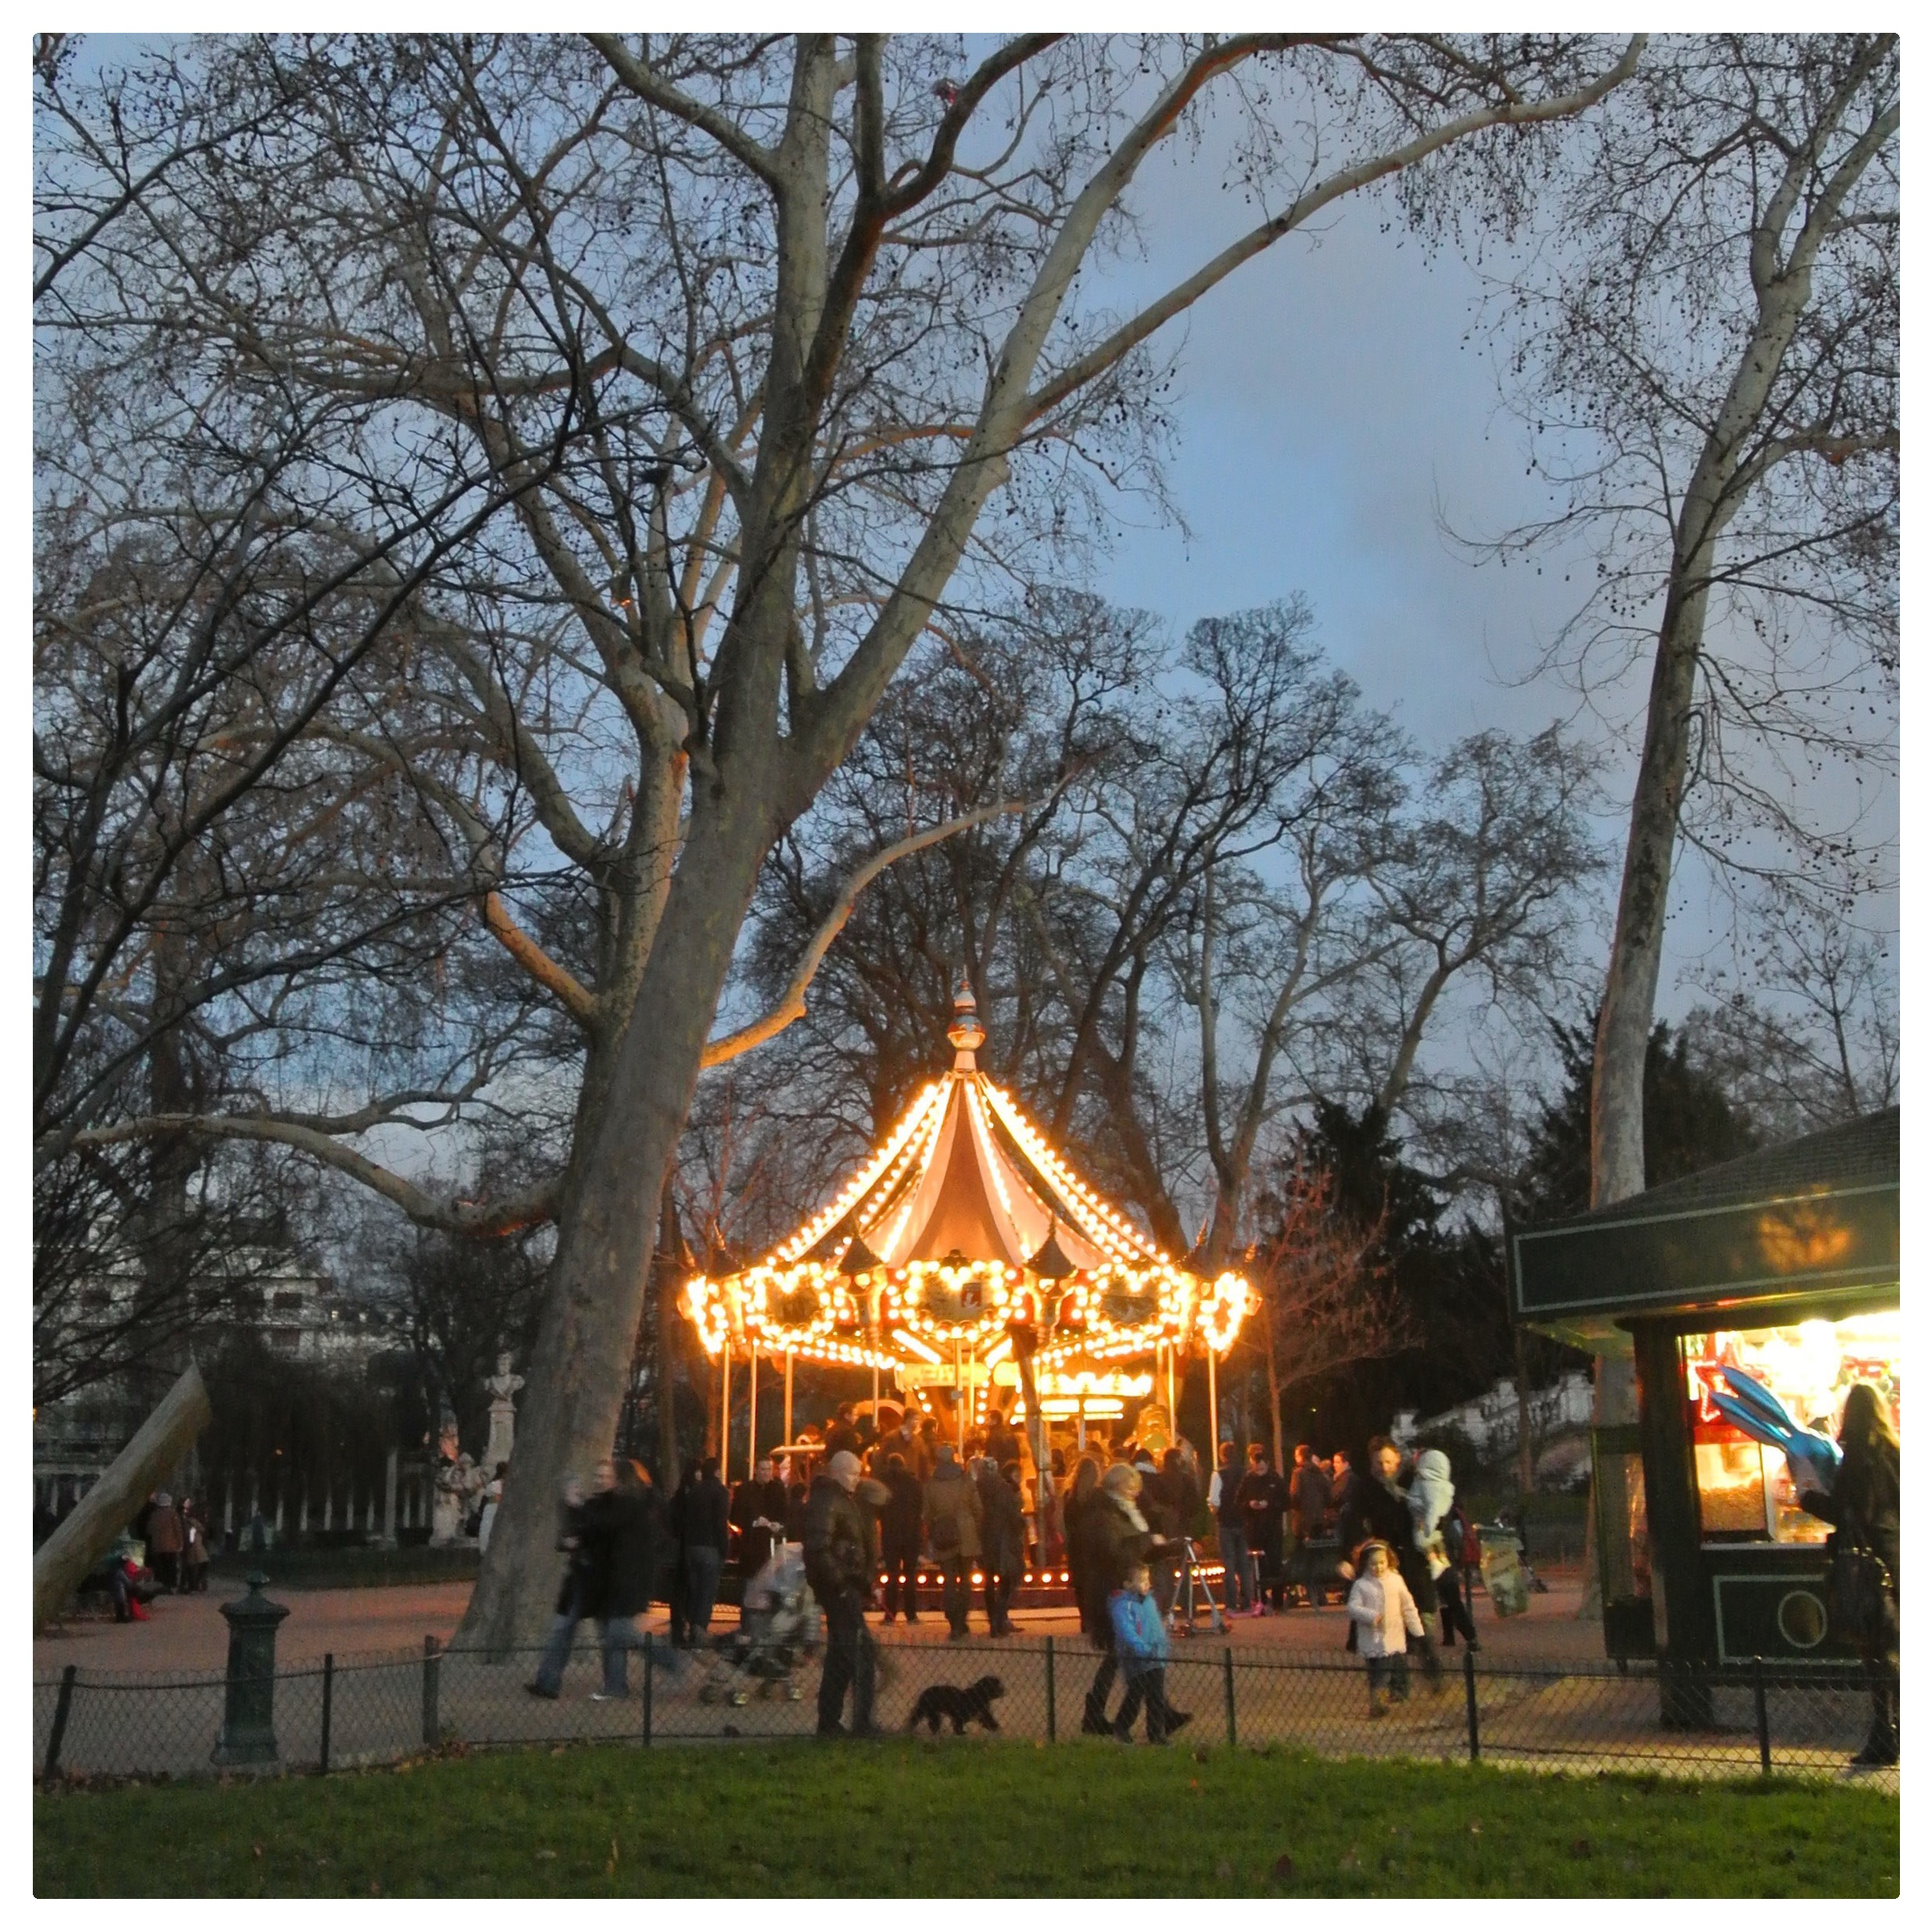 Beautifully lit Carousel at  Parc Monceau